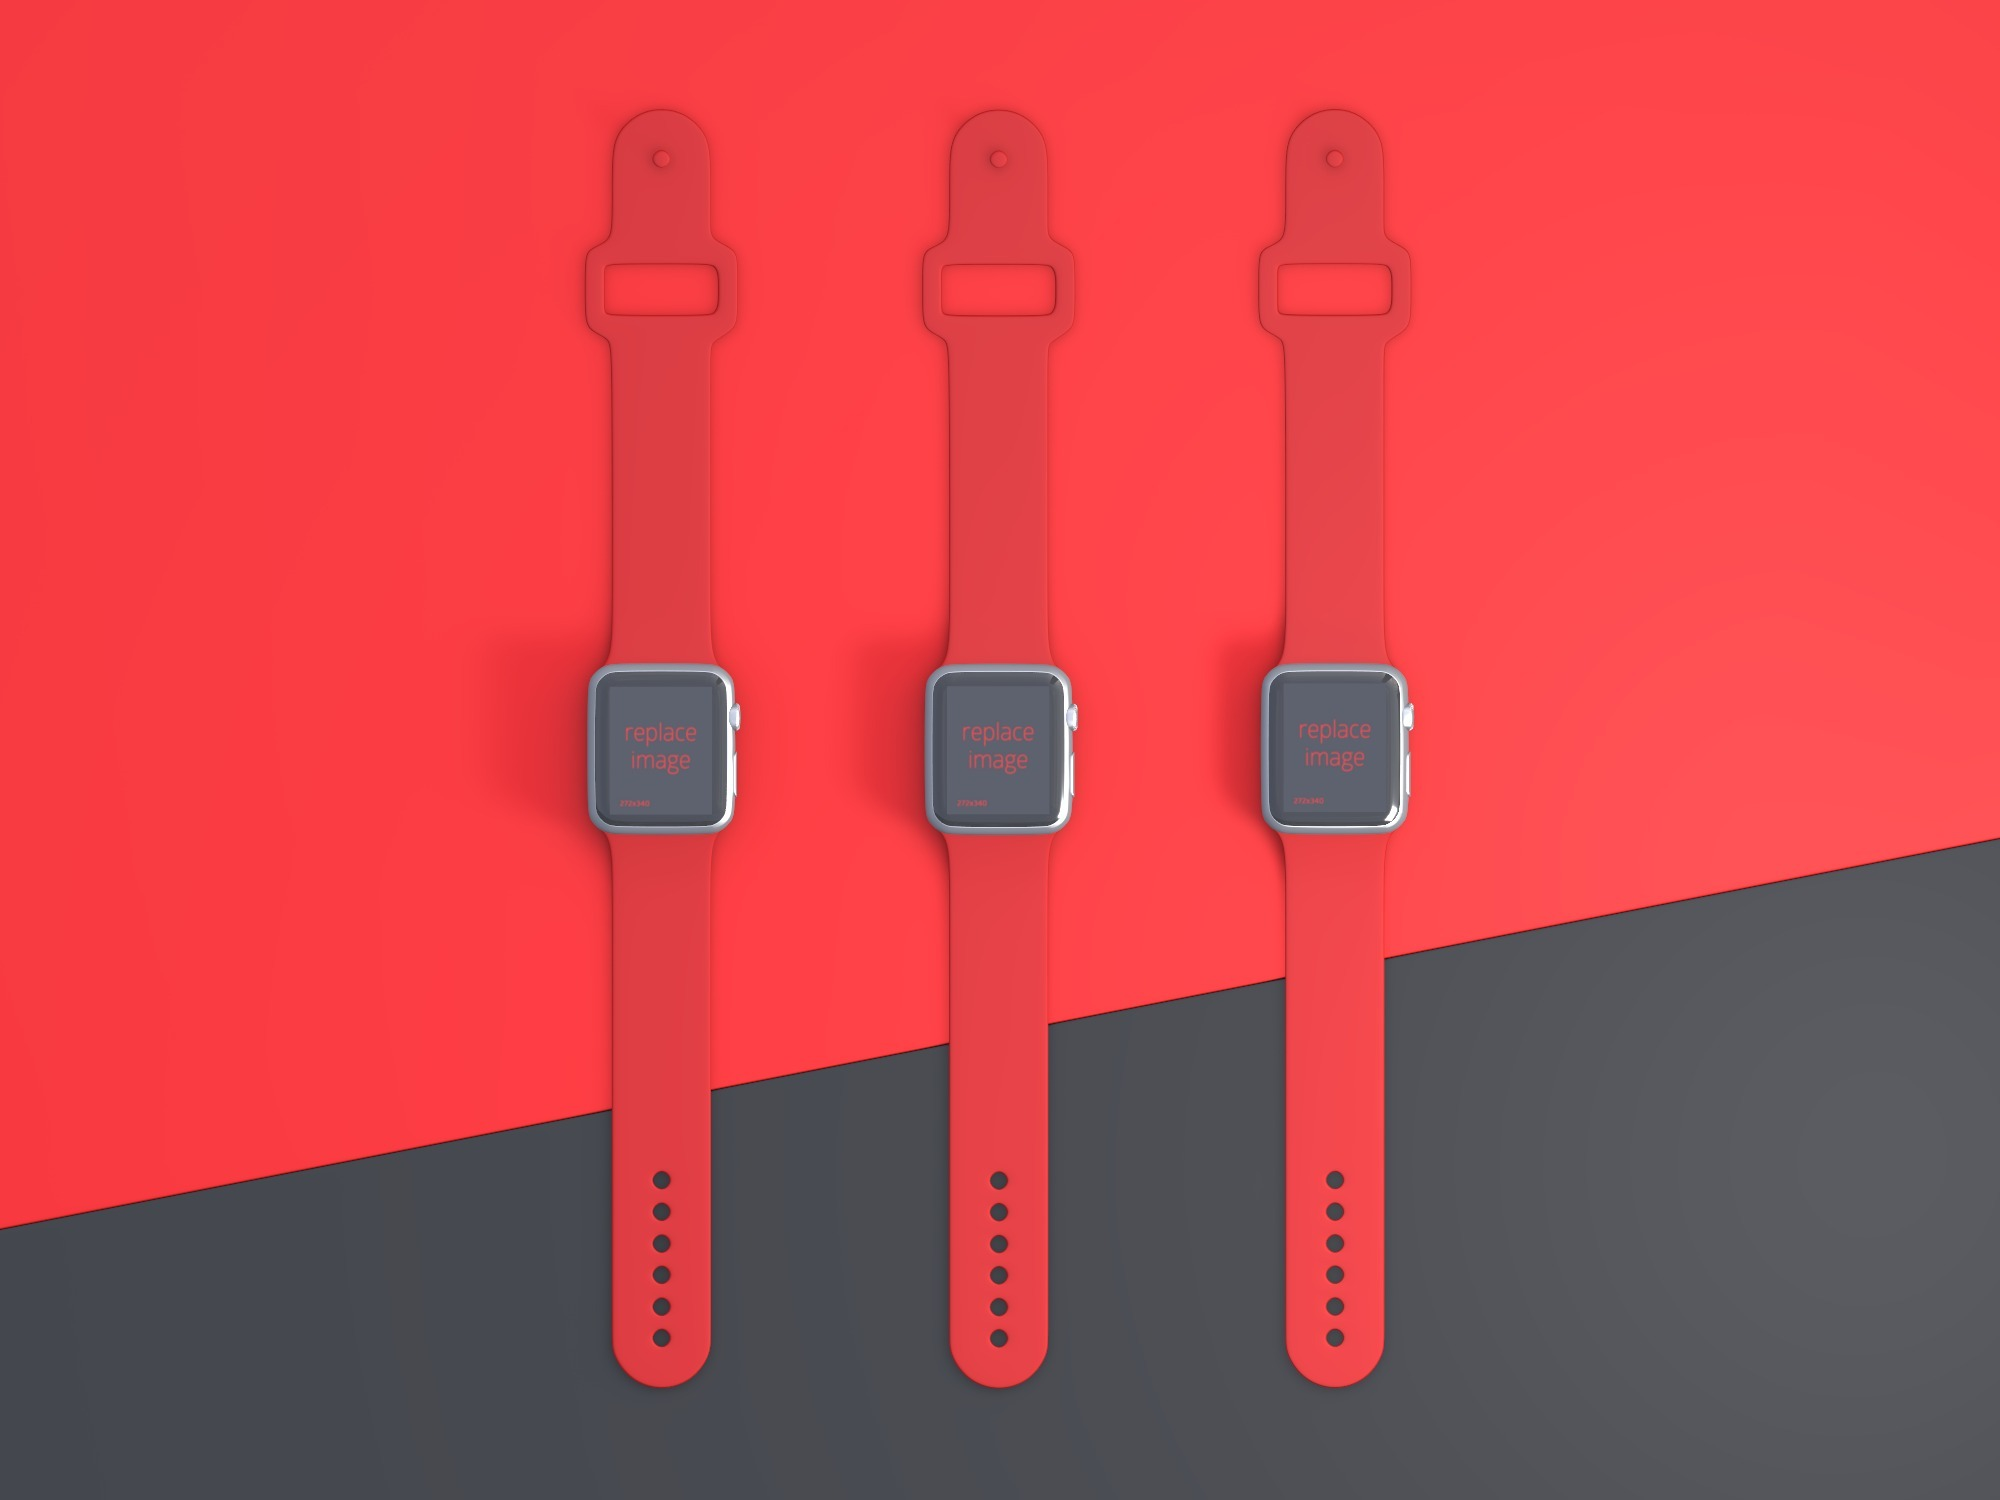 Minimalistic smartwatch mockup - replace images - 3D design by Vectary templates on Jul 23, 2018